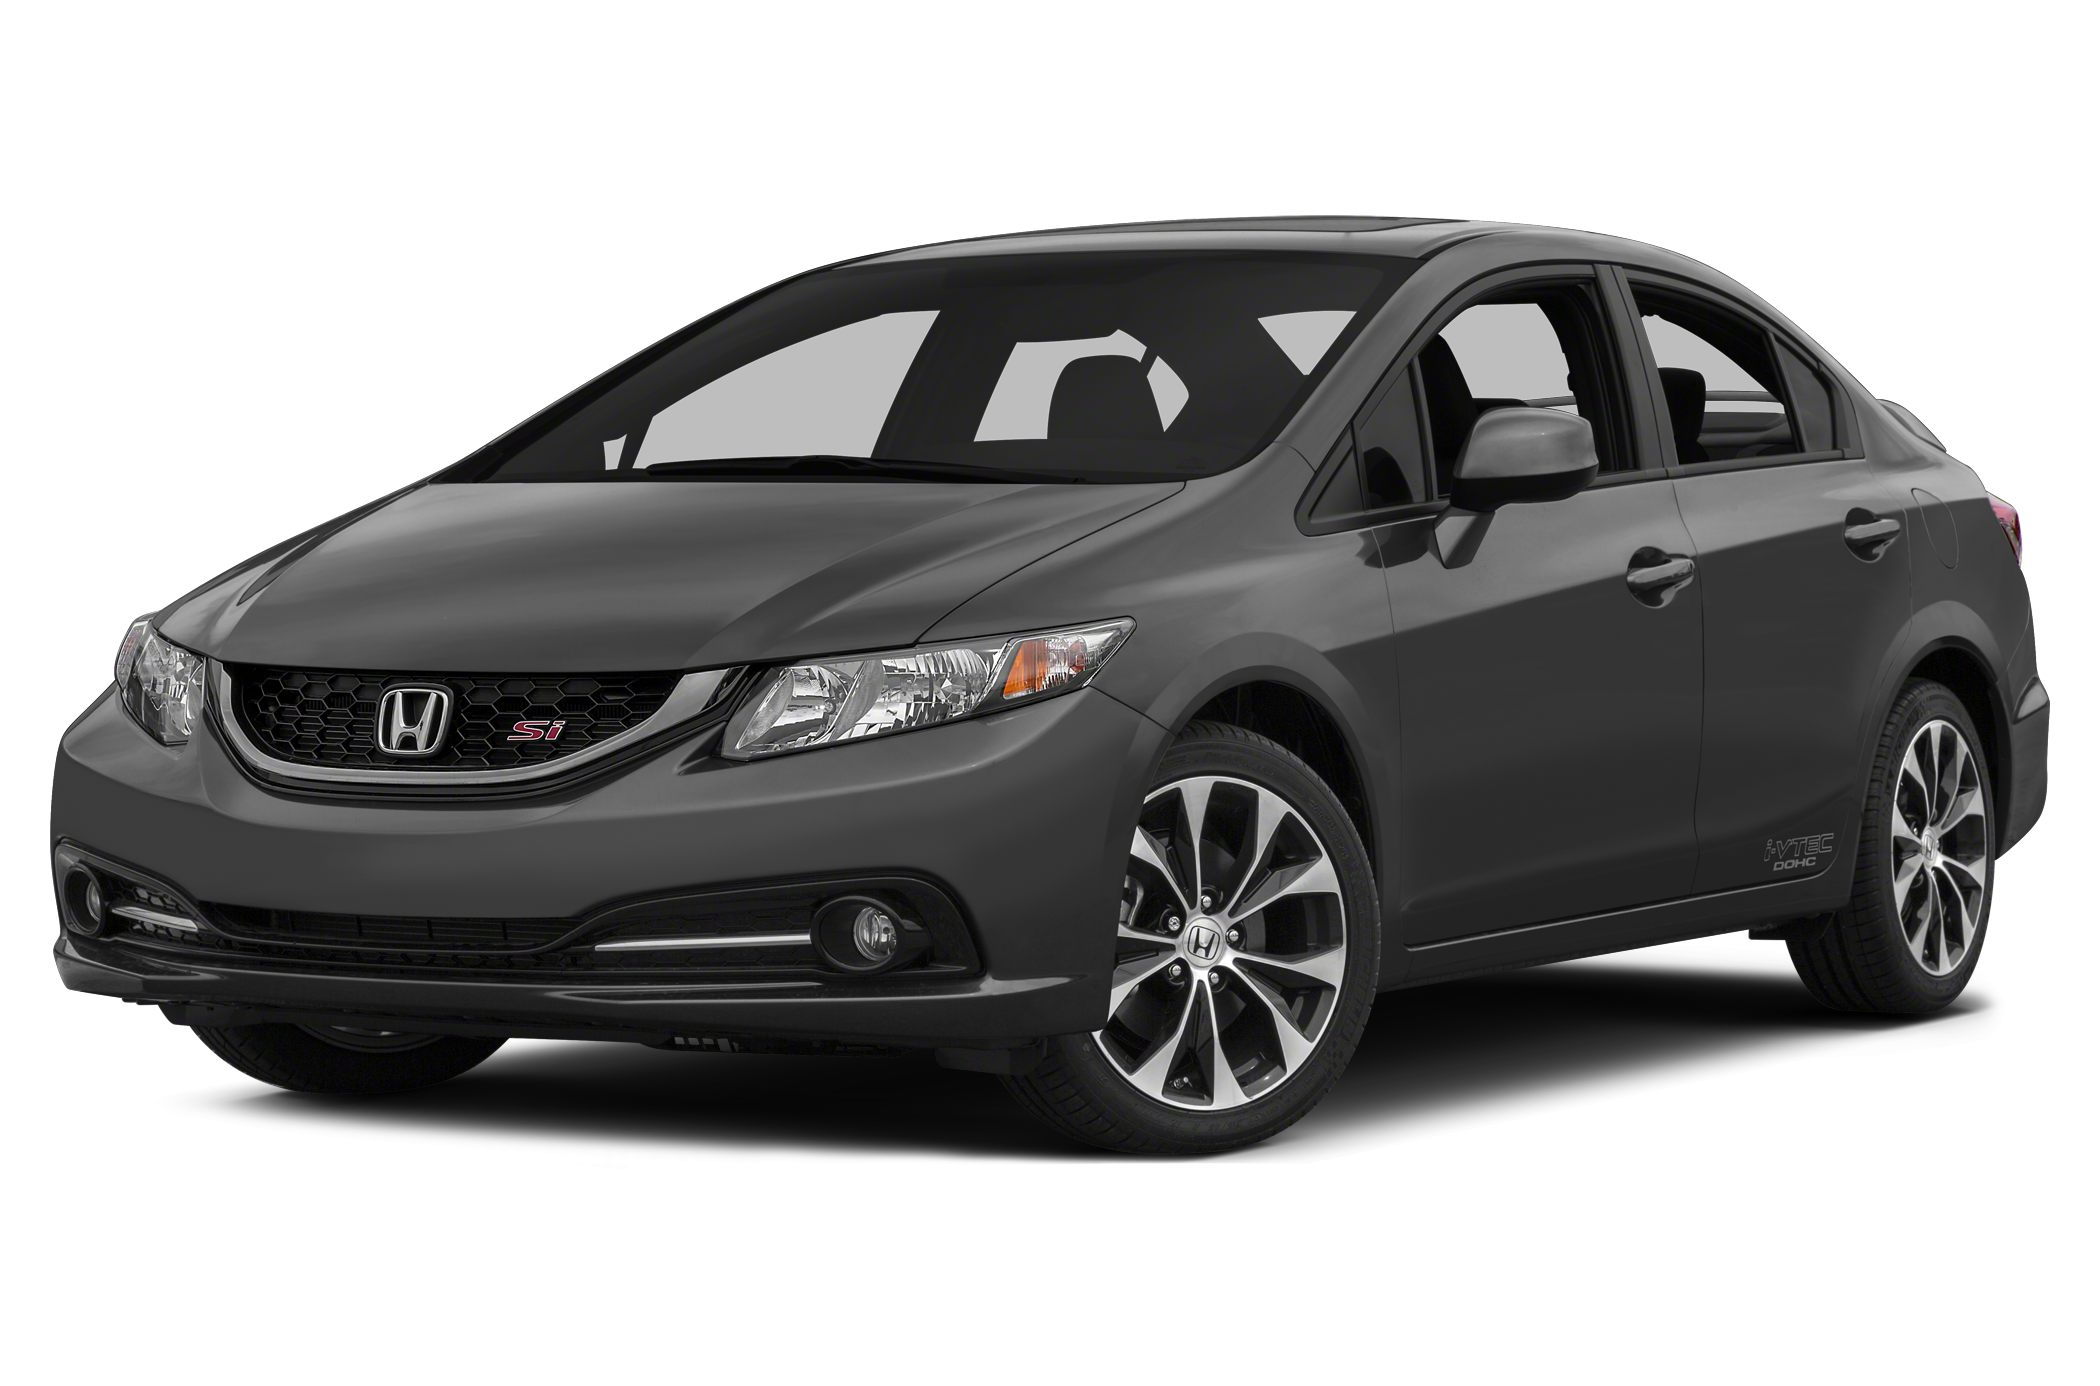 2013 Honda Civic Si Sedan for sale in Houston for $19,995 with 19,226 miles